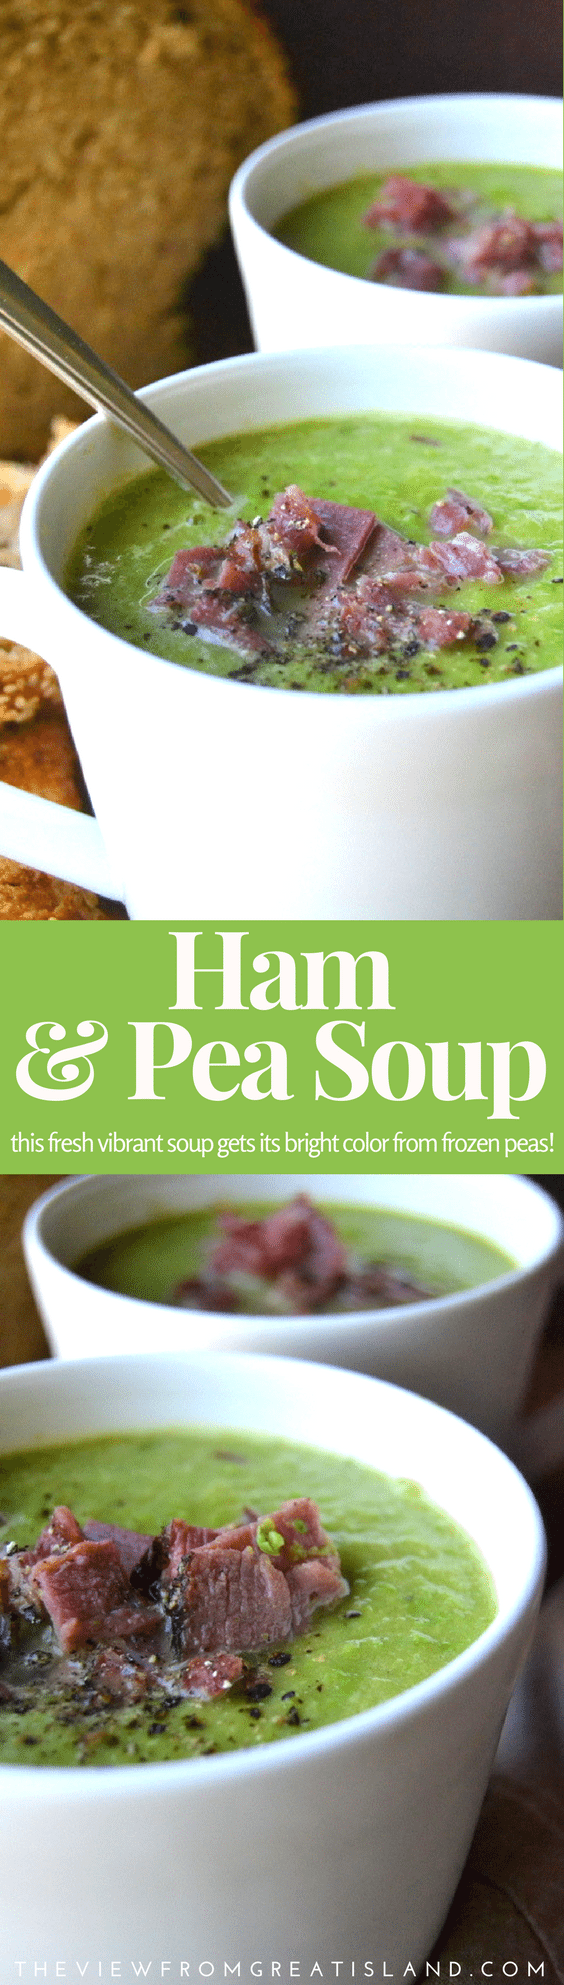 Hearty and vibrant Ham and Pea Soup made with fresh frozen peas will warm up the coldest night! #hamandpeasoup #peasoup #peas #ham #soup #heartysoups #souprecipe #glutenfreesoup #glutenfree #leftoverham